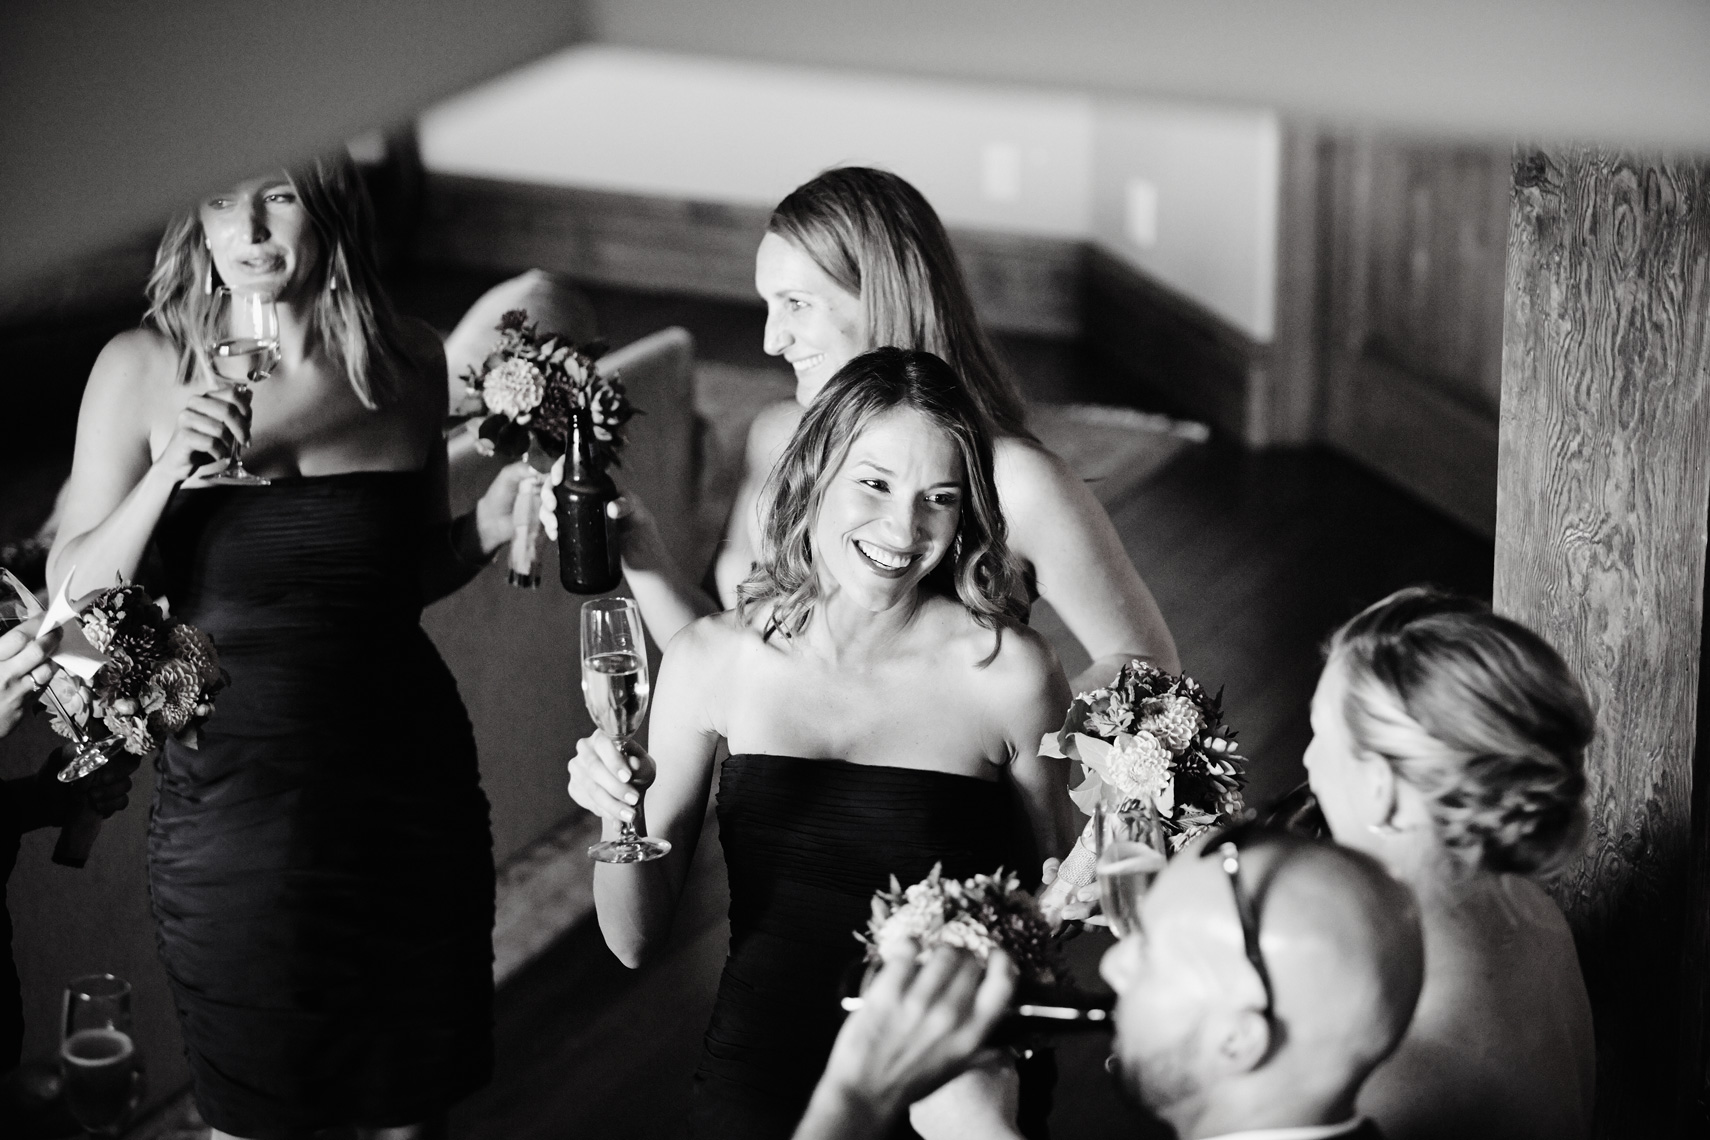 Bridesmaids celebrate after wedding ceremony at private residence in Palo Alto, California